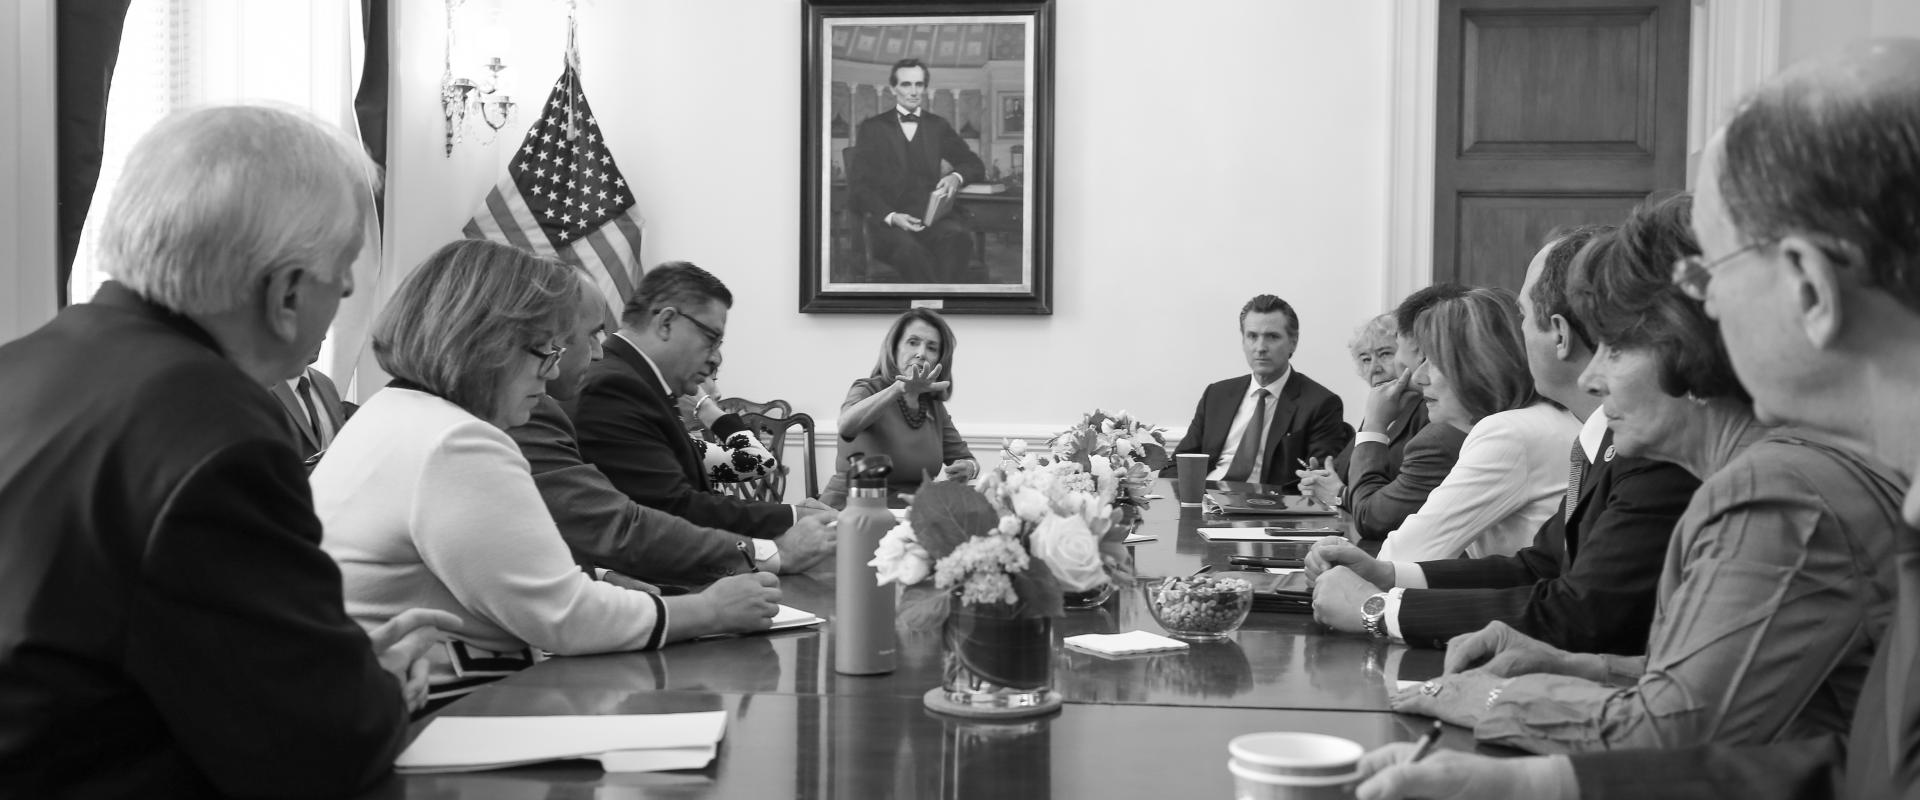 Congresswoman Pelosi and the California Democratic Congressional Delegation meets with Lieutenant Governor Gavin Newsom to discuss how the state and federal government can work together on issues affecting communities statewide.